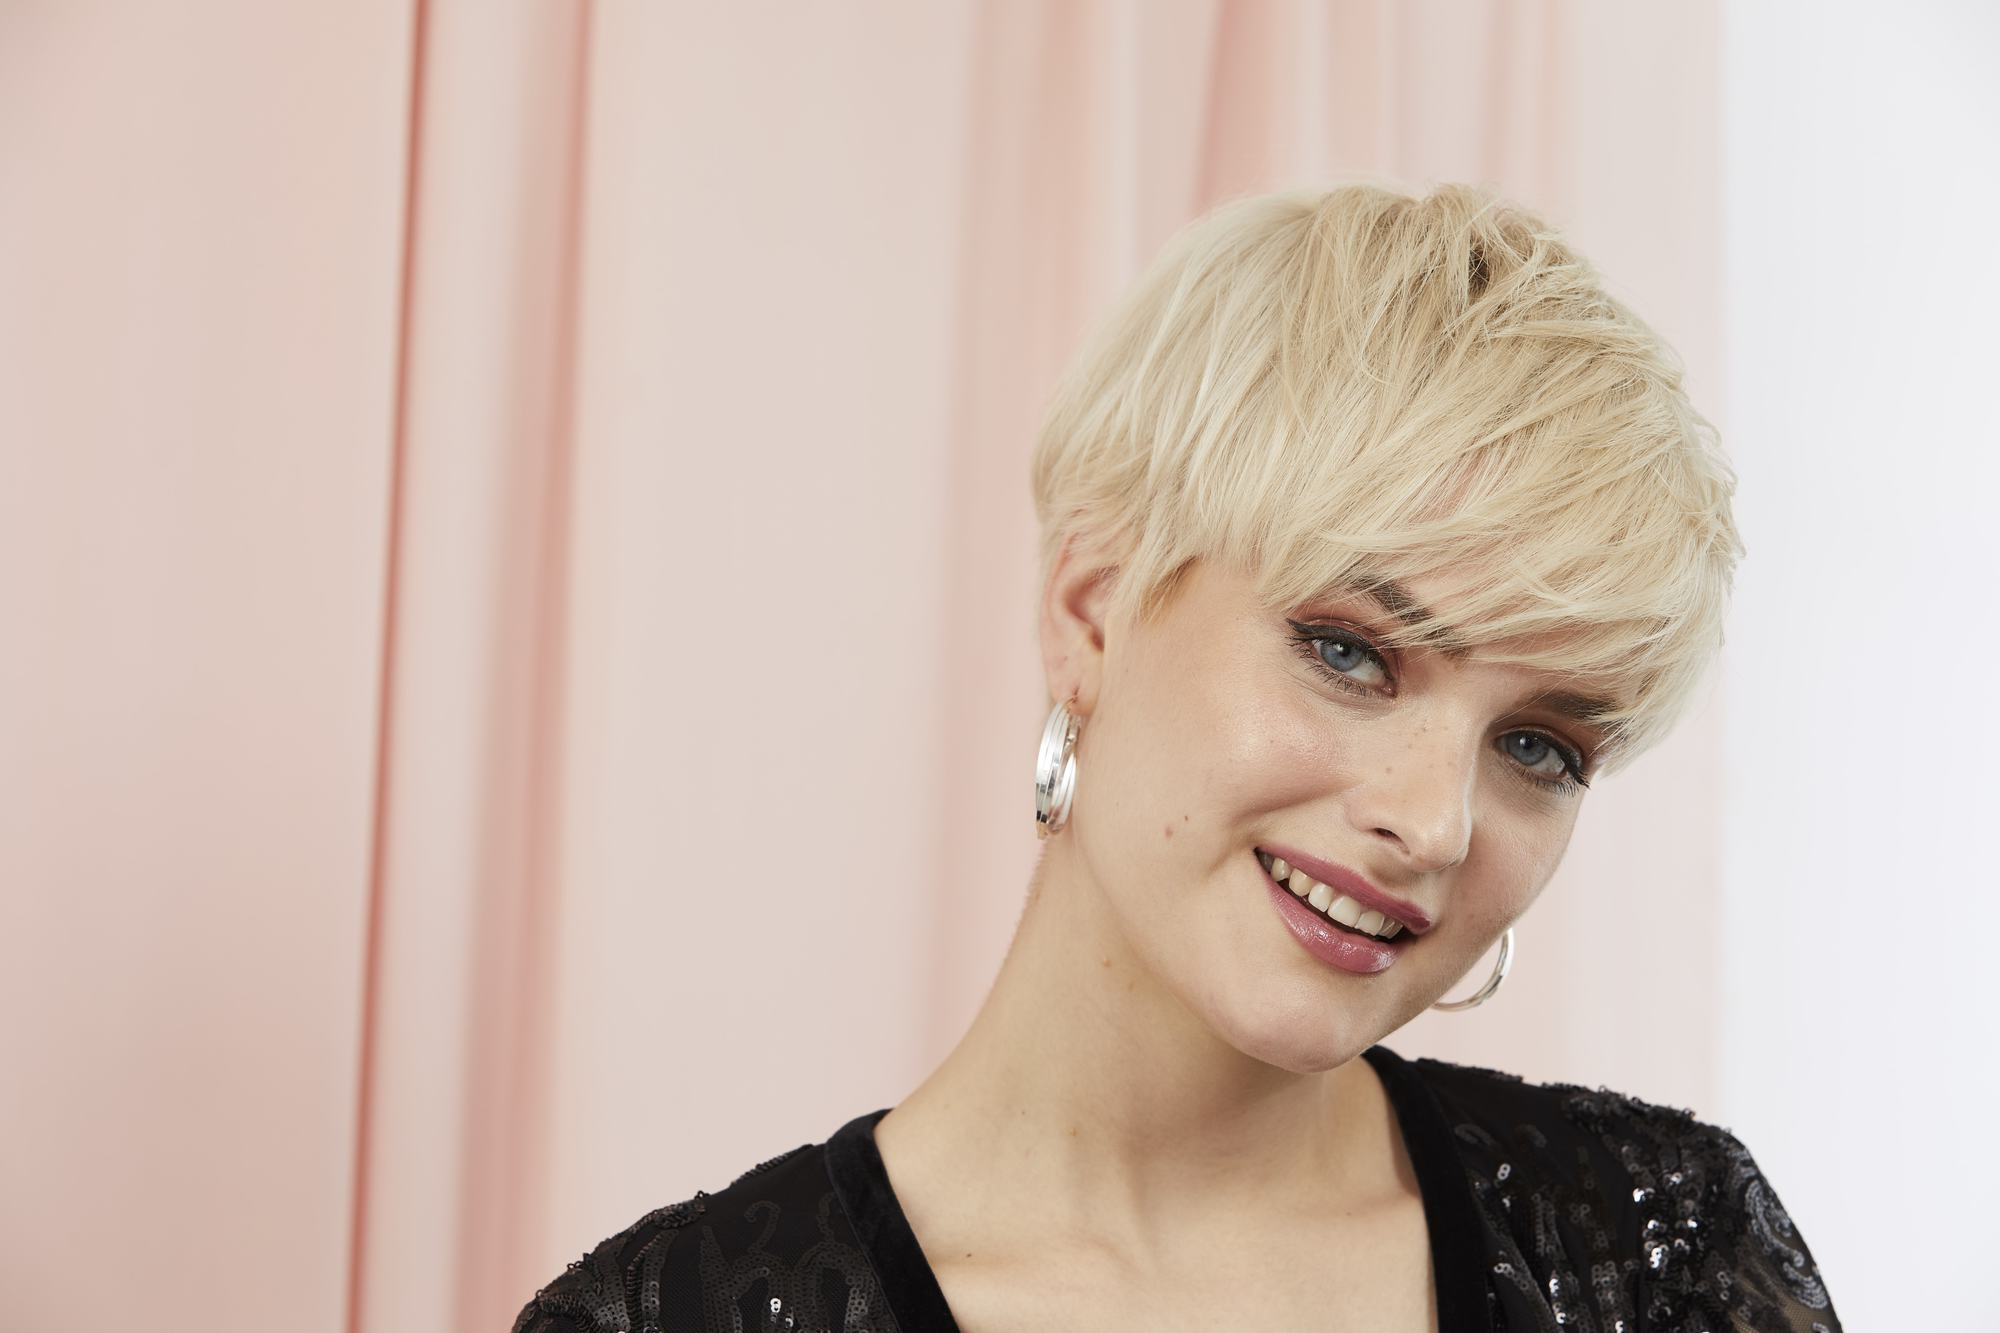 35 Best Pixie Cut Hairstyles For 2019 You Will Want To See With Two Tone Feathered Pixie Haircuts (View 16 of 20)